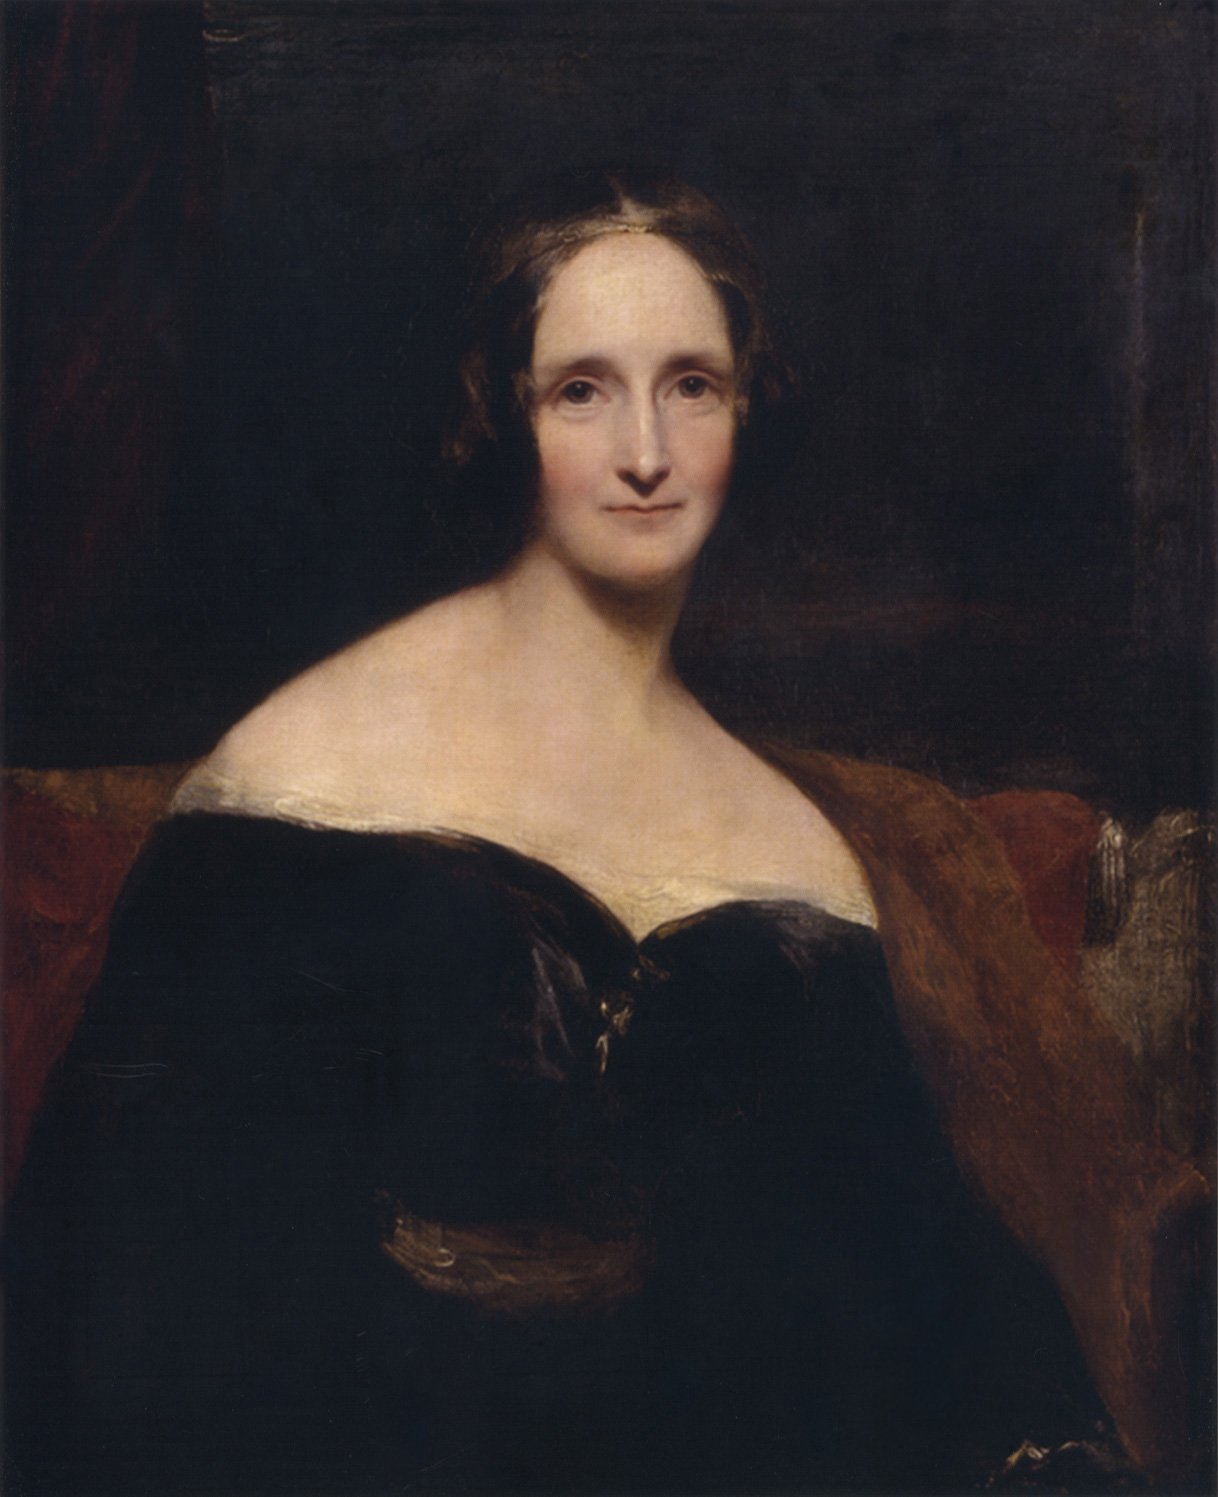 Richard Rothwell's portrait of Mary Shelley was shown at the Royal Academy in 1840, accompanied by lines from Percy Shelley's poem The Revolt of Islam calling her a